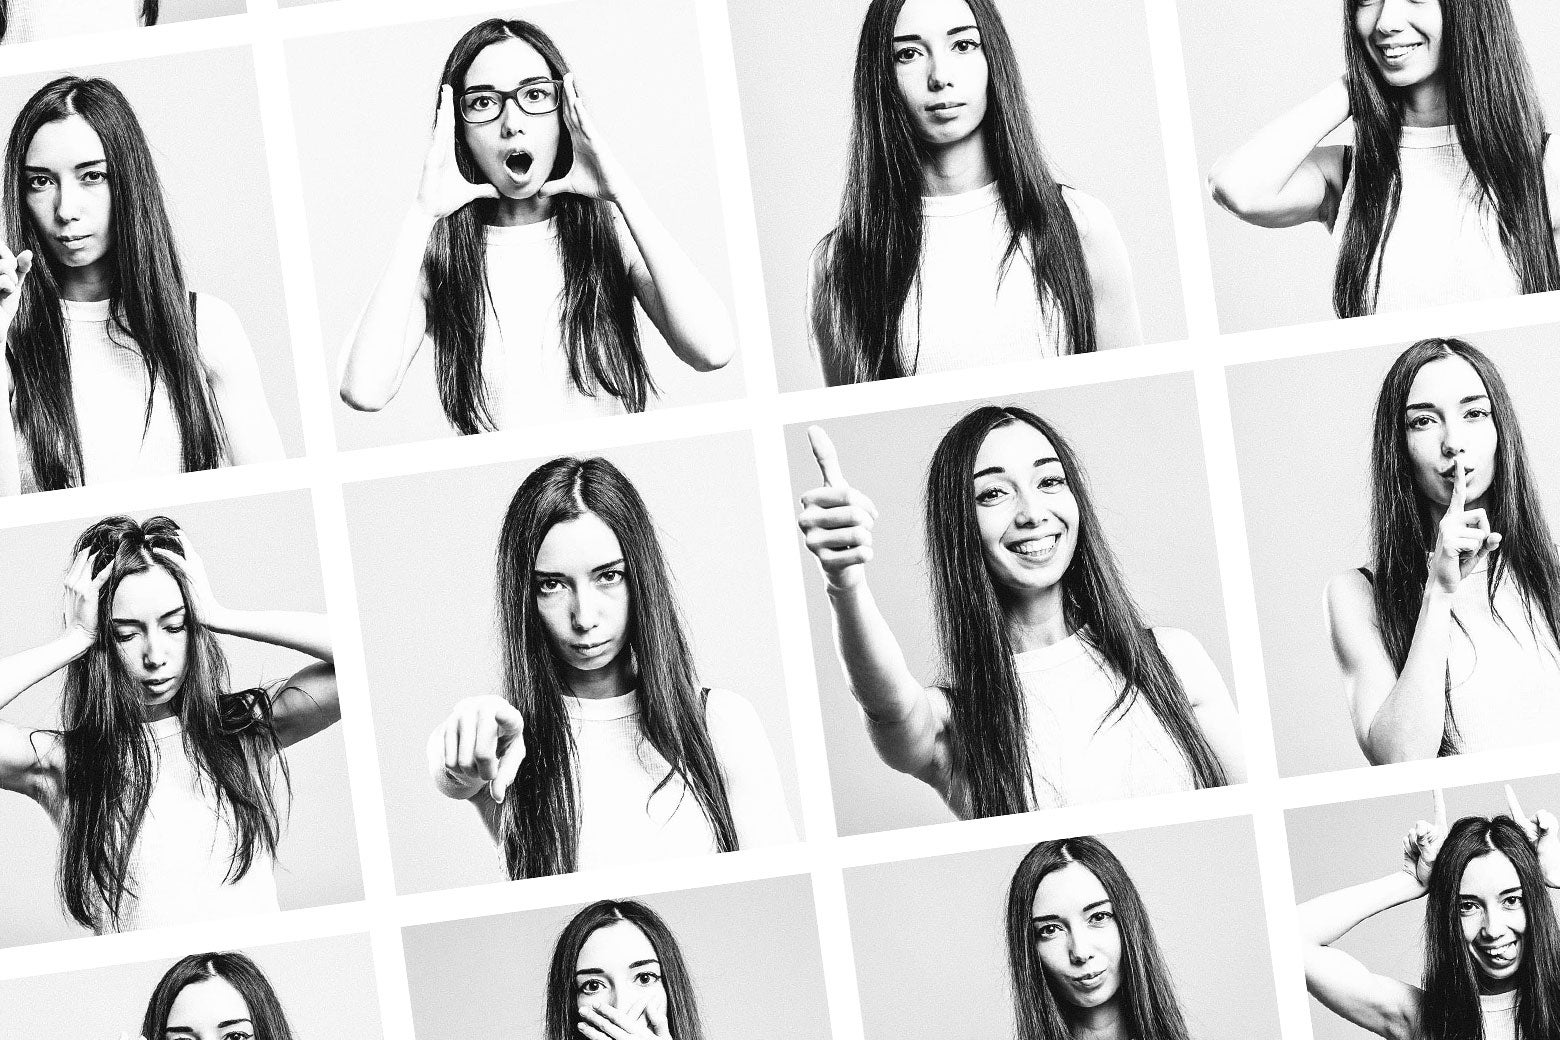 A teenage girl poses in various ways for yearbook photos.